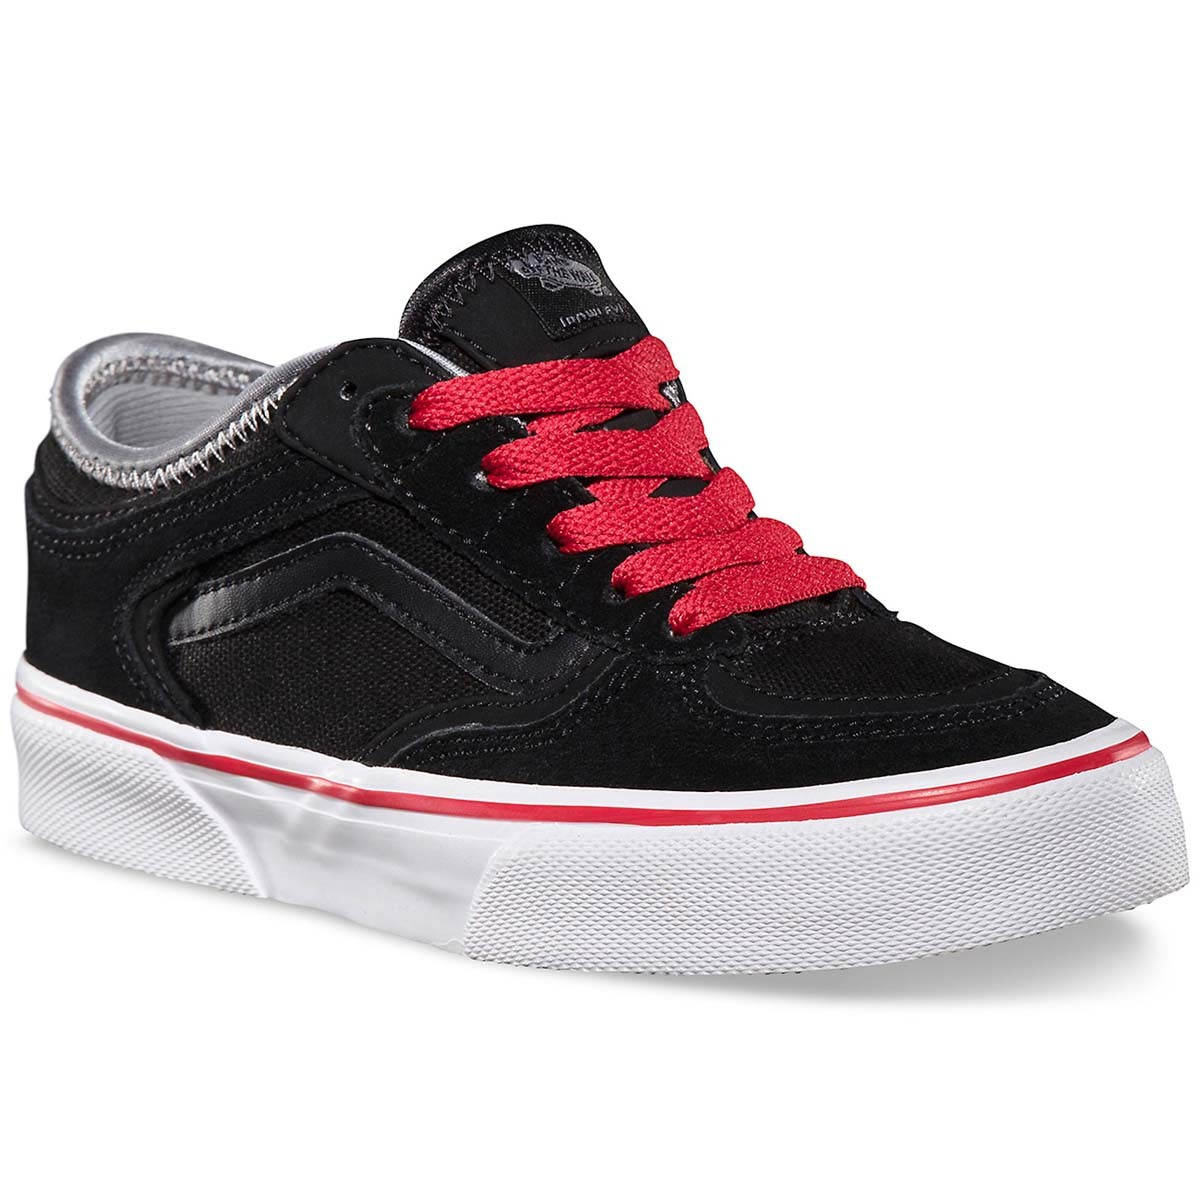 b3bcd9c65e Vans Geoff Rowley Pro Big Kid Shoes - Black Black Red